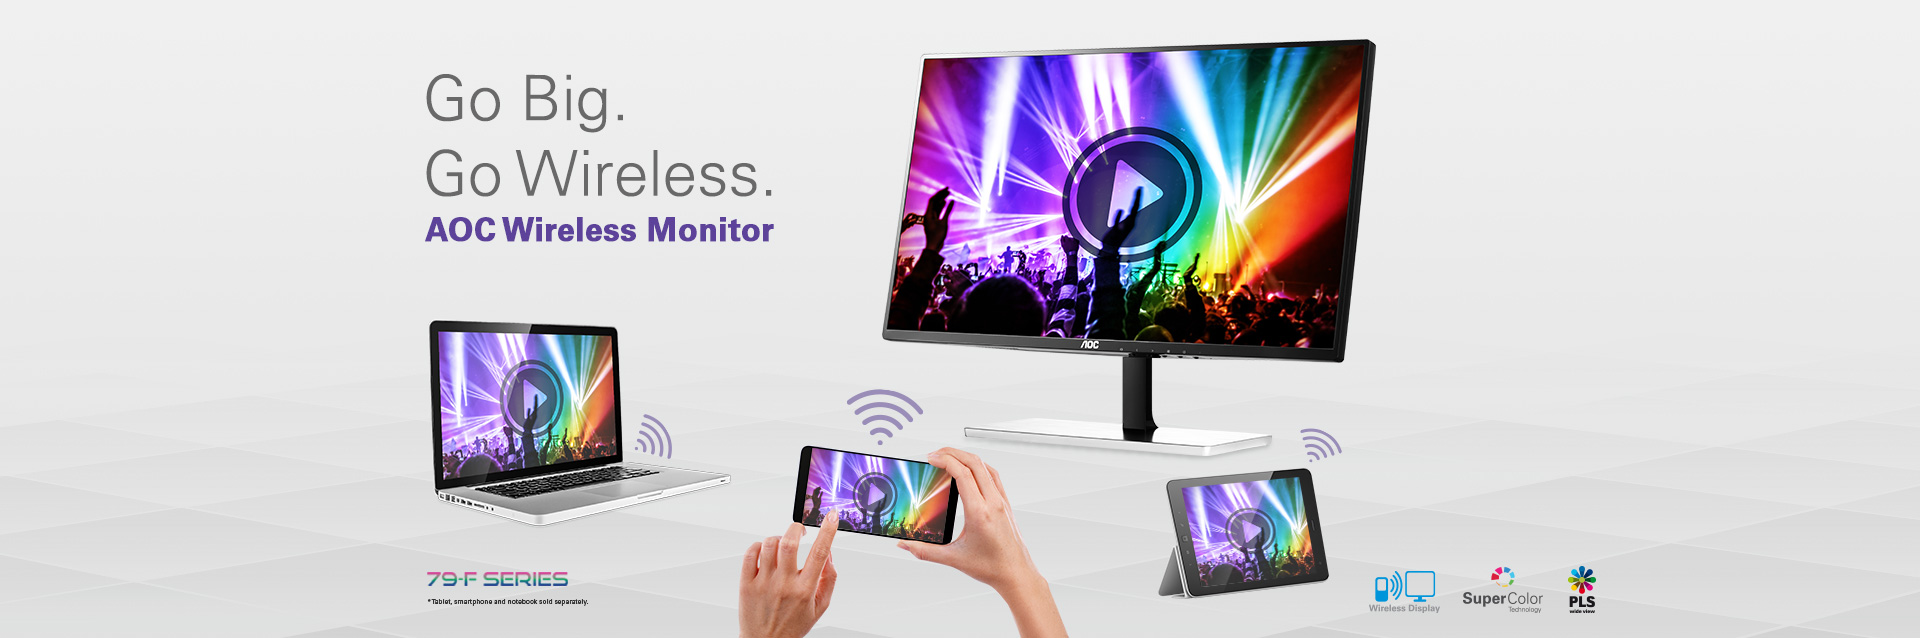 Aoc Monitor The Worldwide Leader In Display Manufacturing Global Wireless Network Diagram Home Entertainment Europe